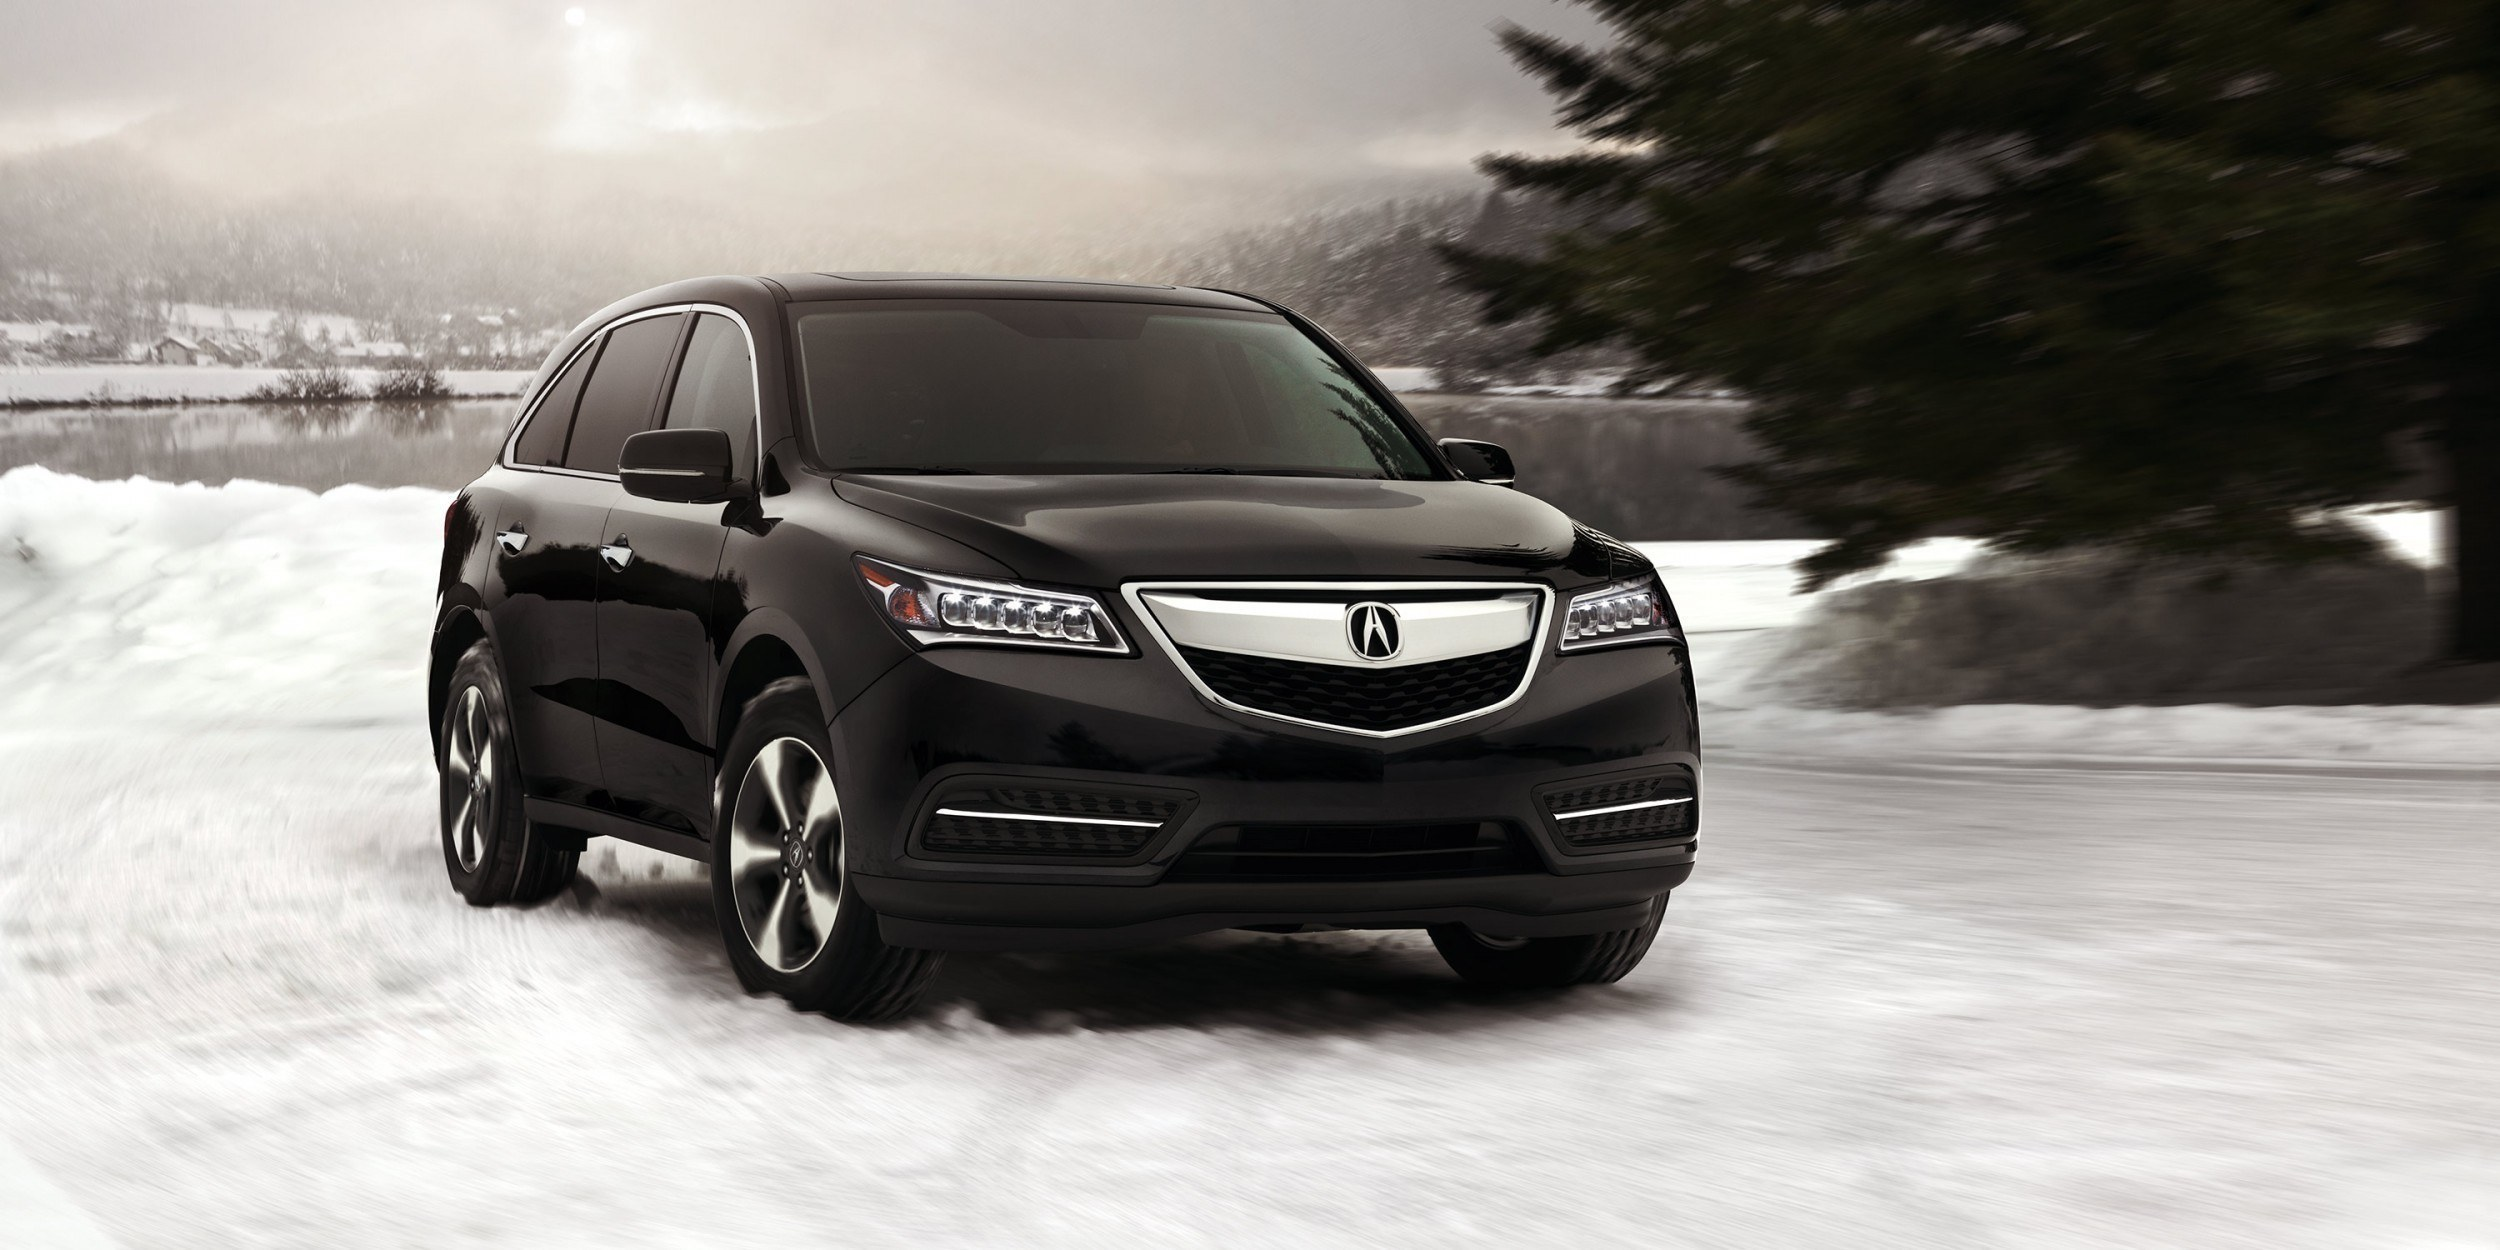 2014 mdx exterior sh awd in crystal black